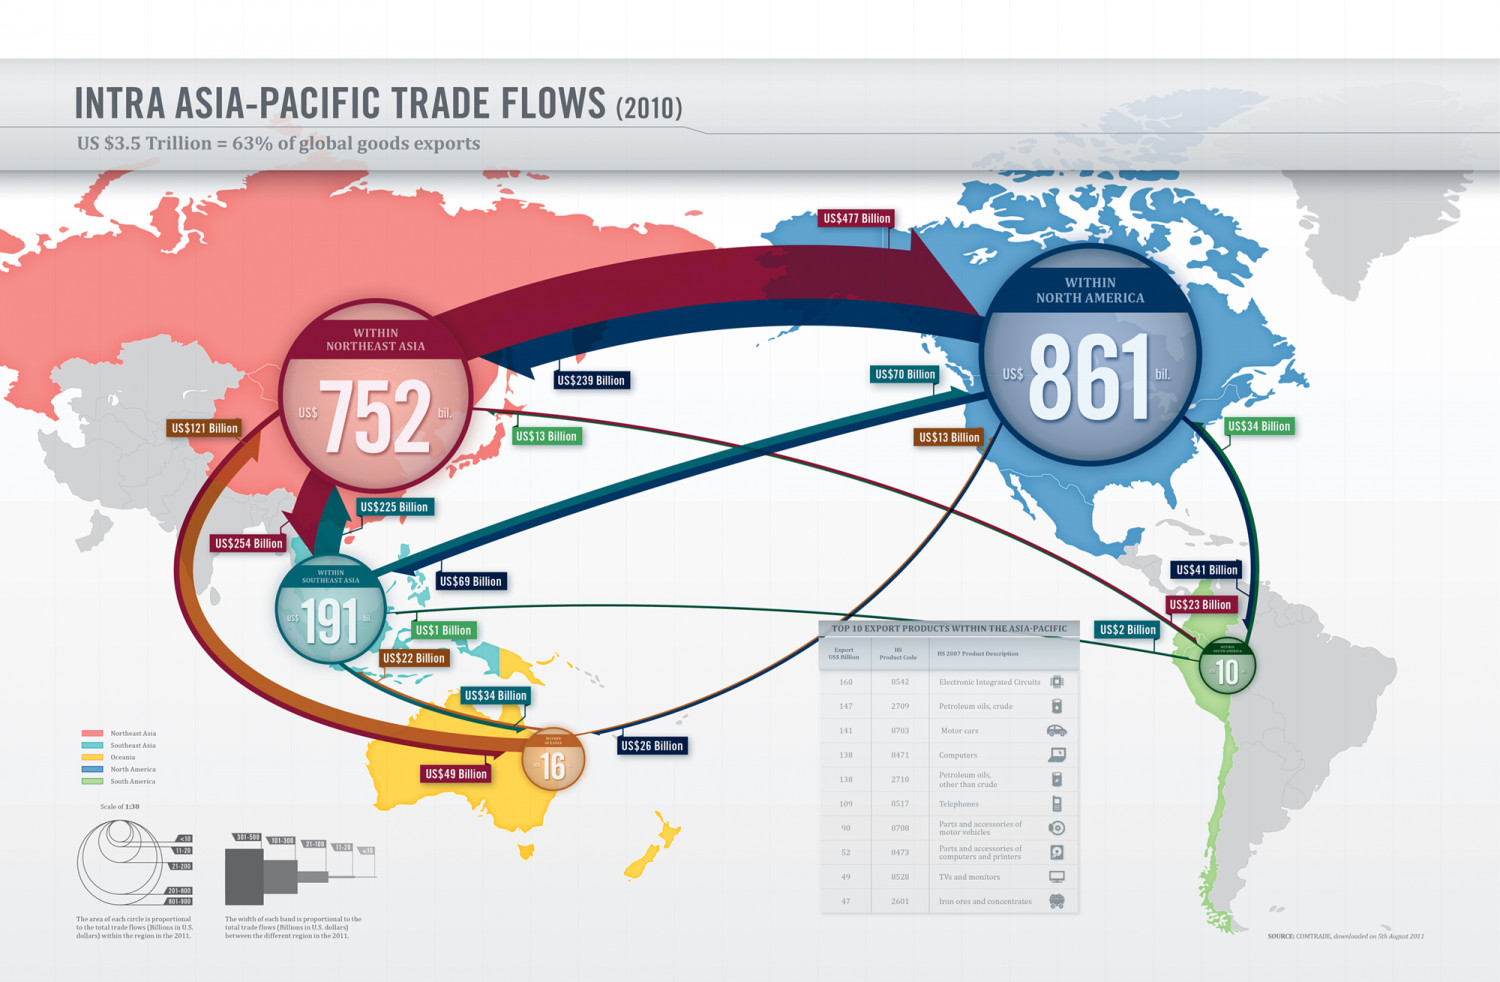 Intra Asia-Pacific Trade Flows Infographic